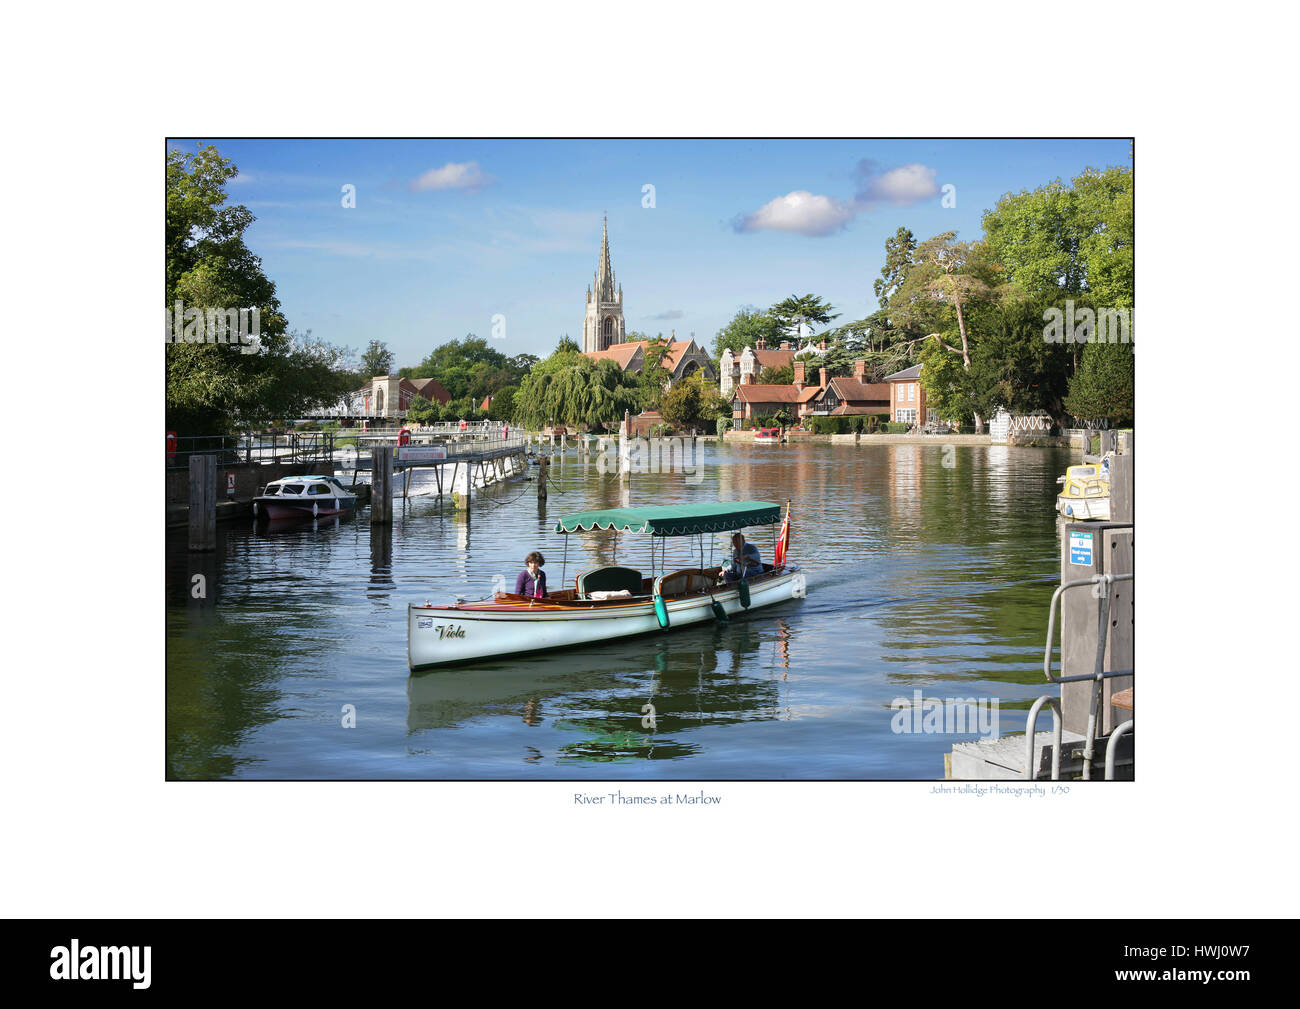 Steam boat on Thames at Marlow approaching lock - Stock Image